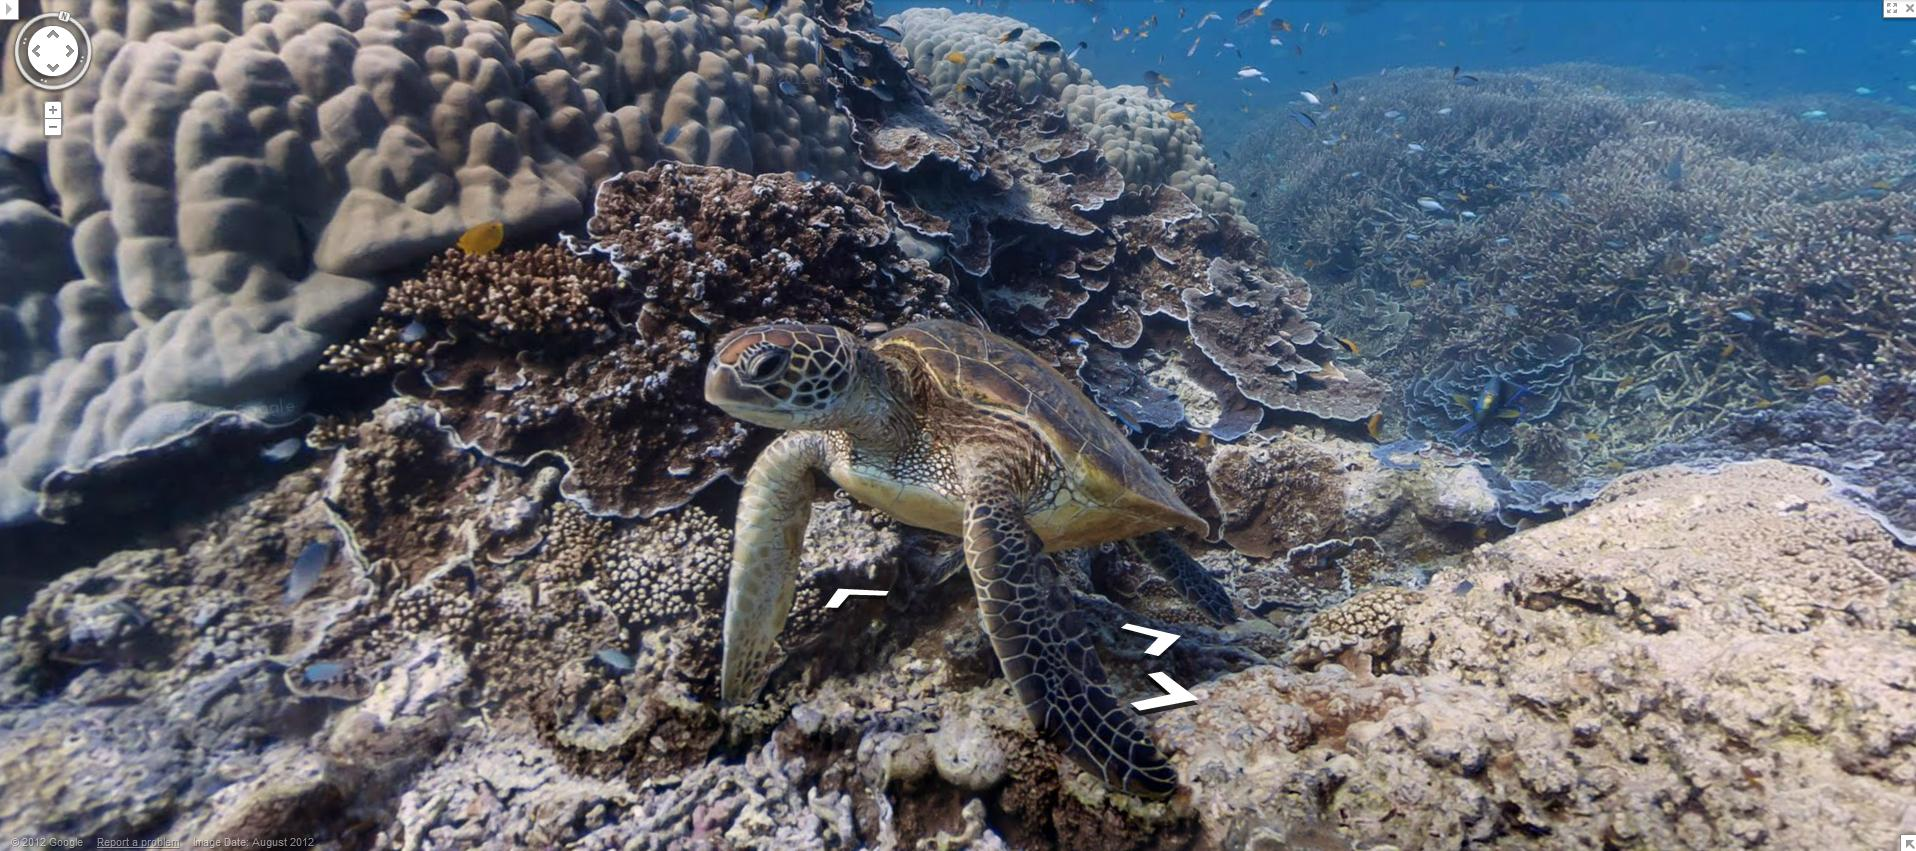 google-maps-street-view-goes-underwater-now-called-google-scuba-view--